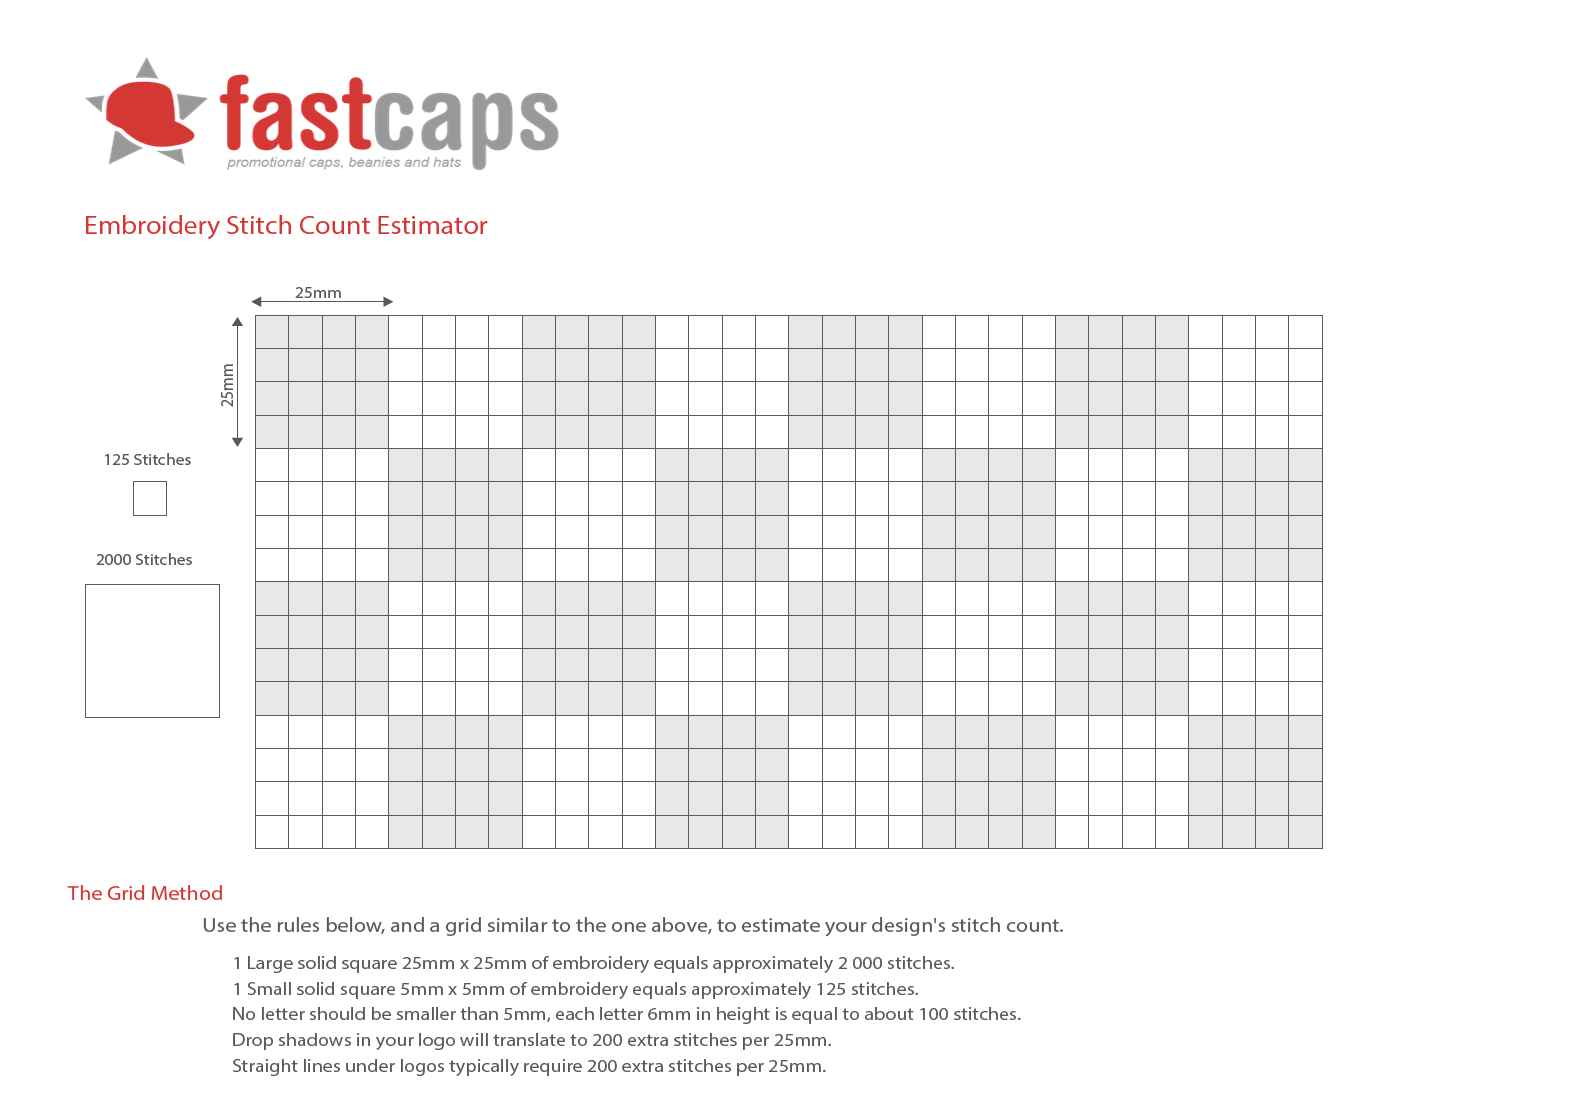 Fast Caps Embroidery Stitch Count Estimator